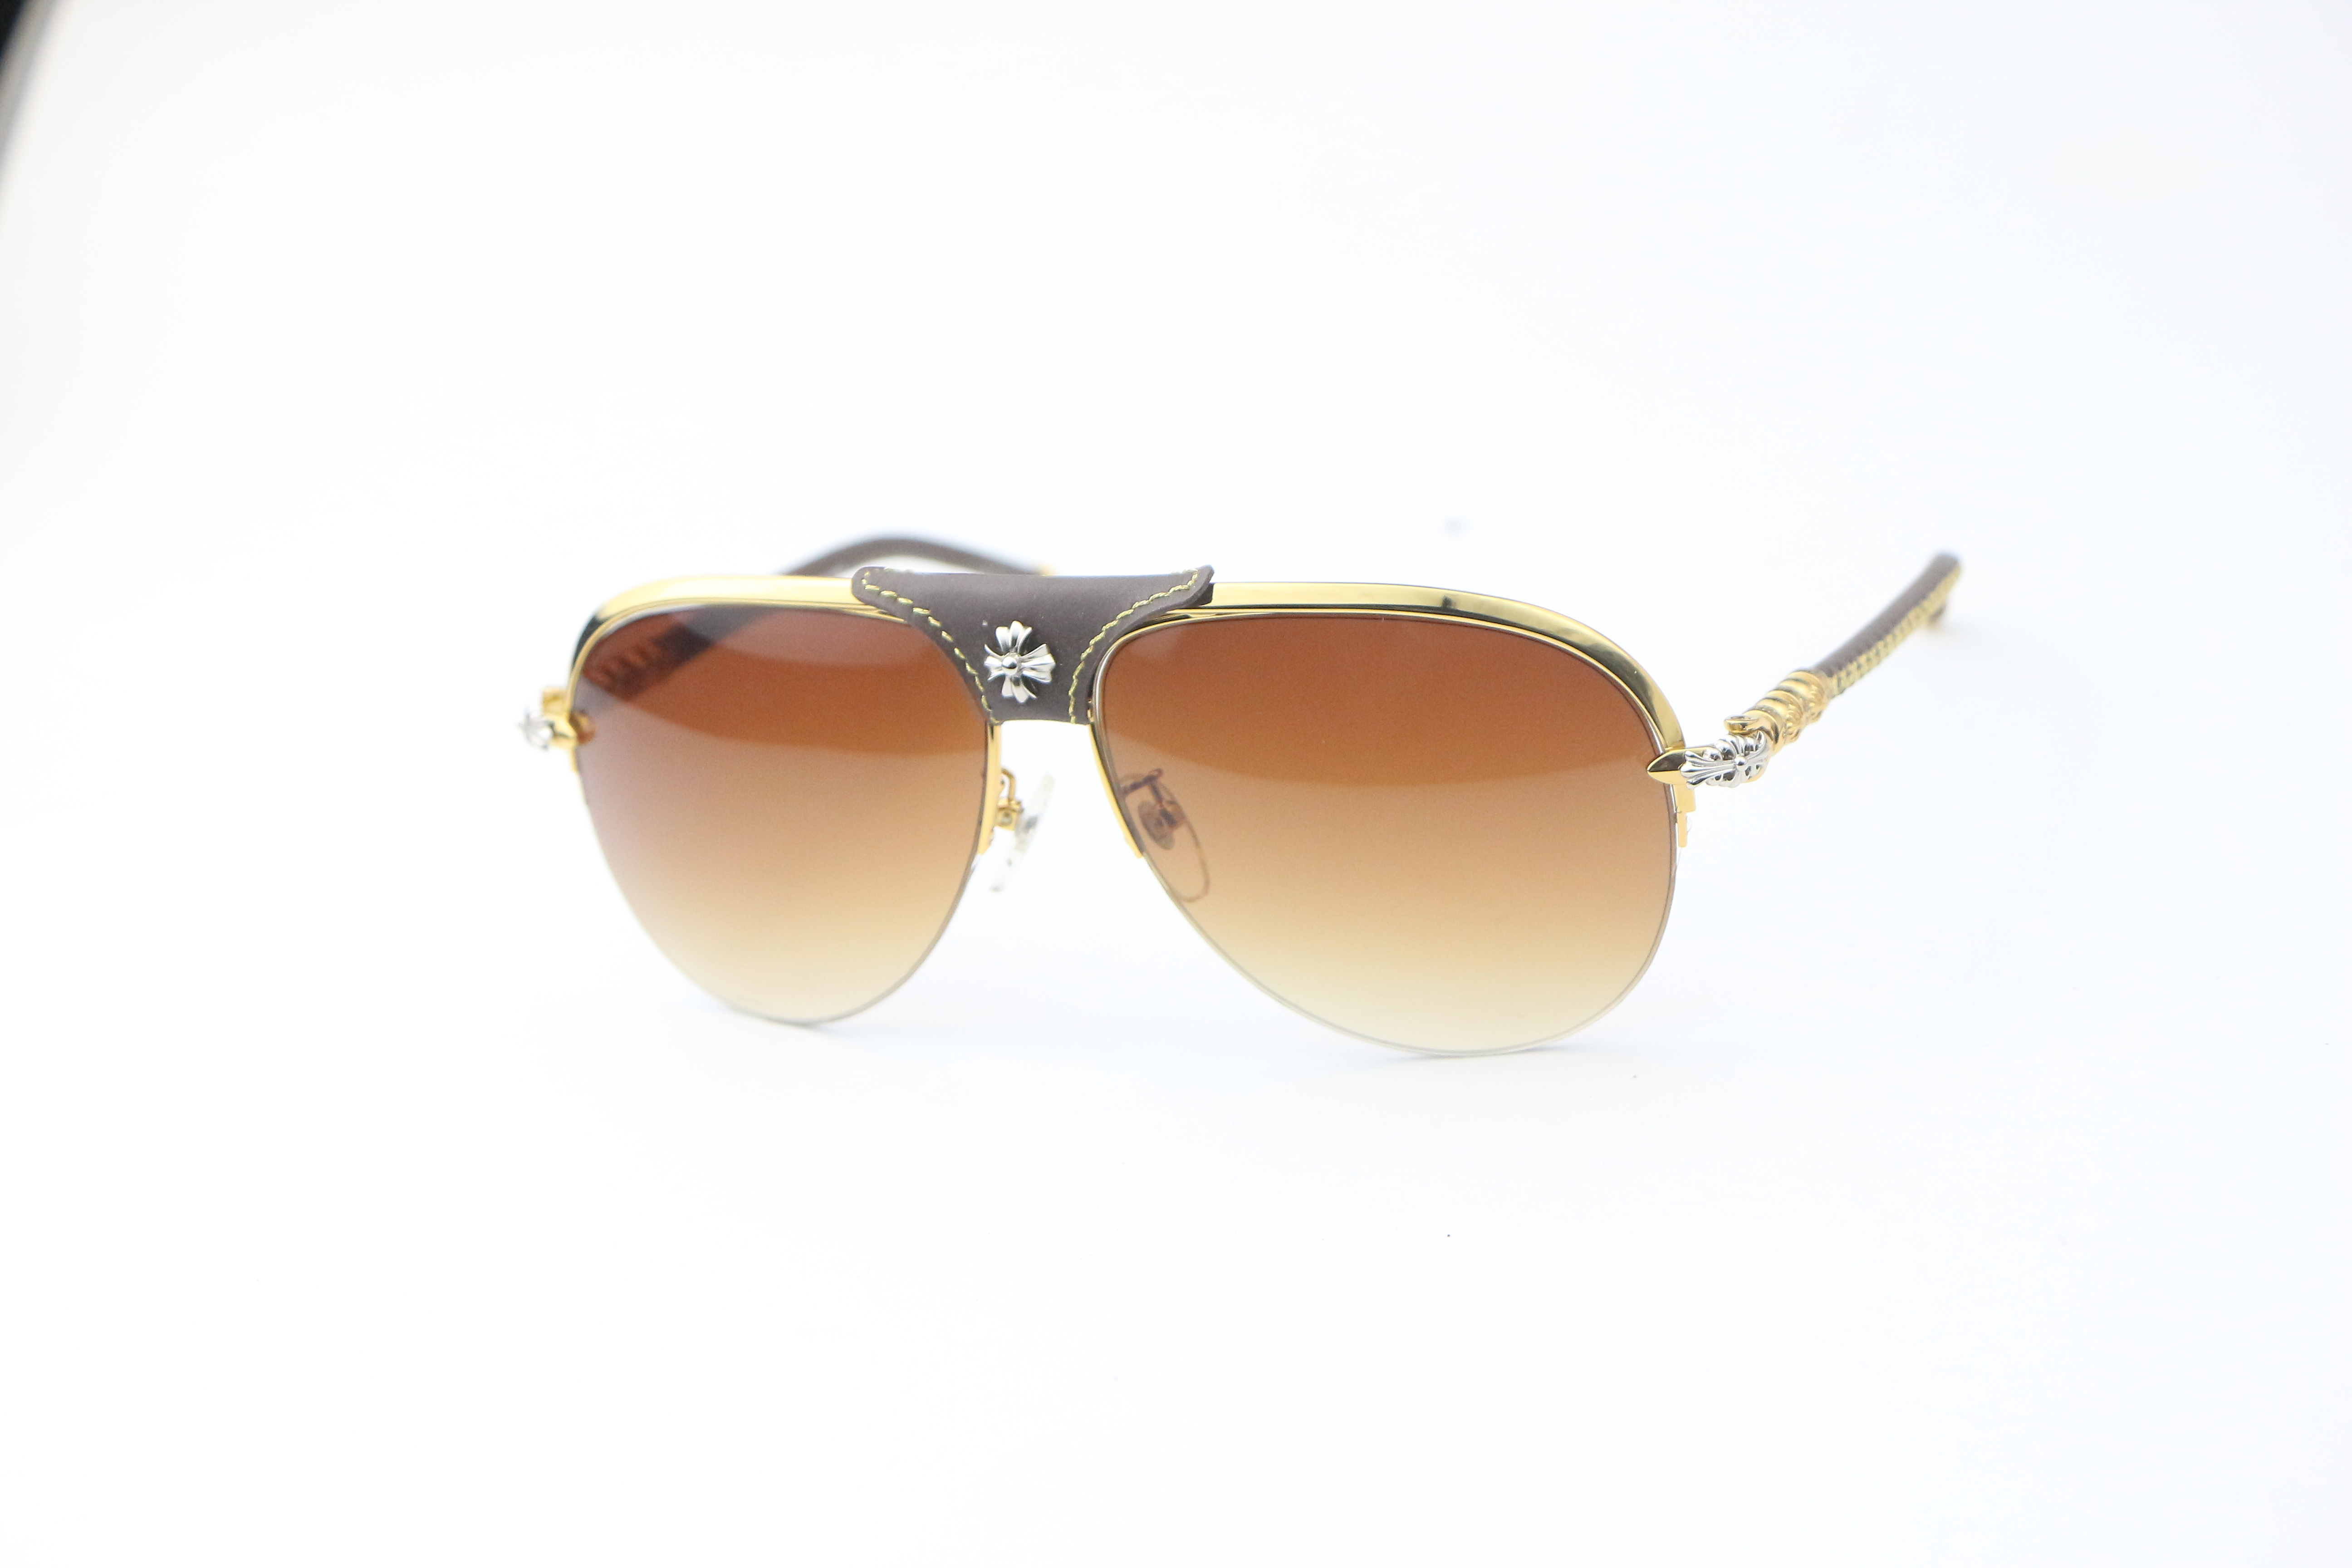 Mens toad glasses gradient lenses leather buckle metal sunglasses xykcher brown large frame Classic Sunglasses